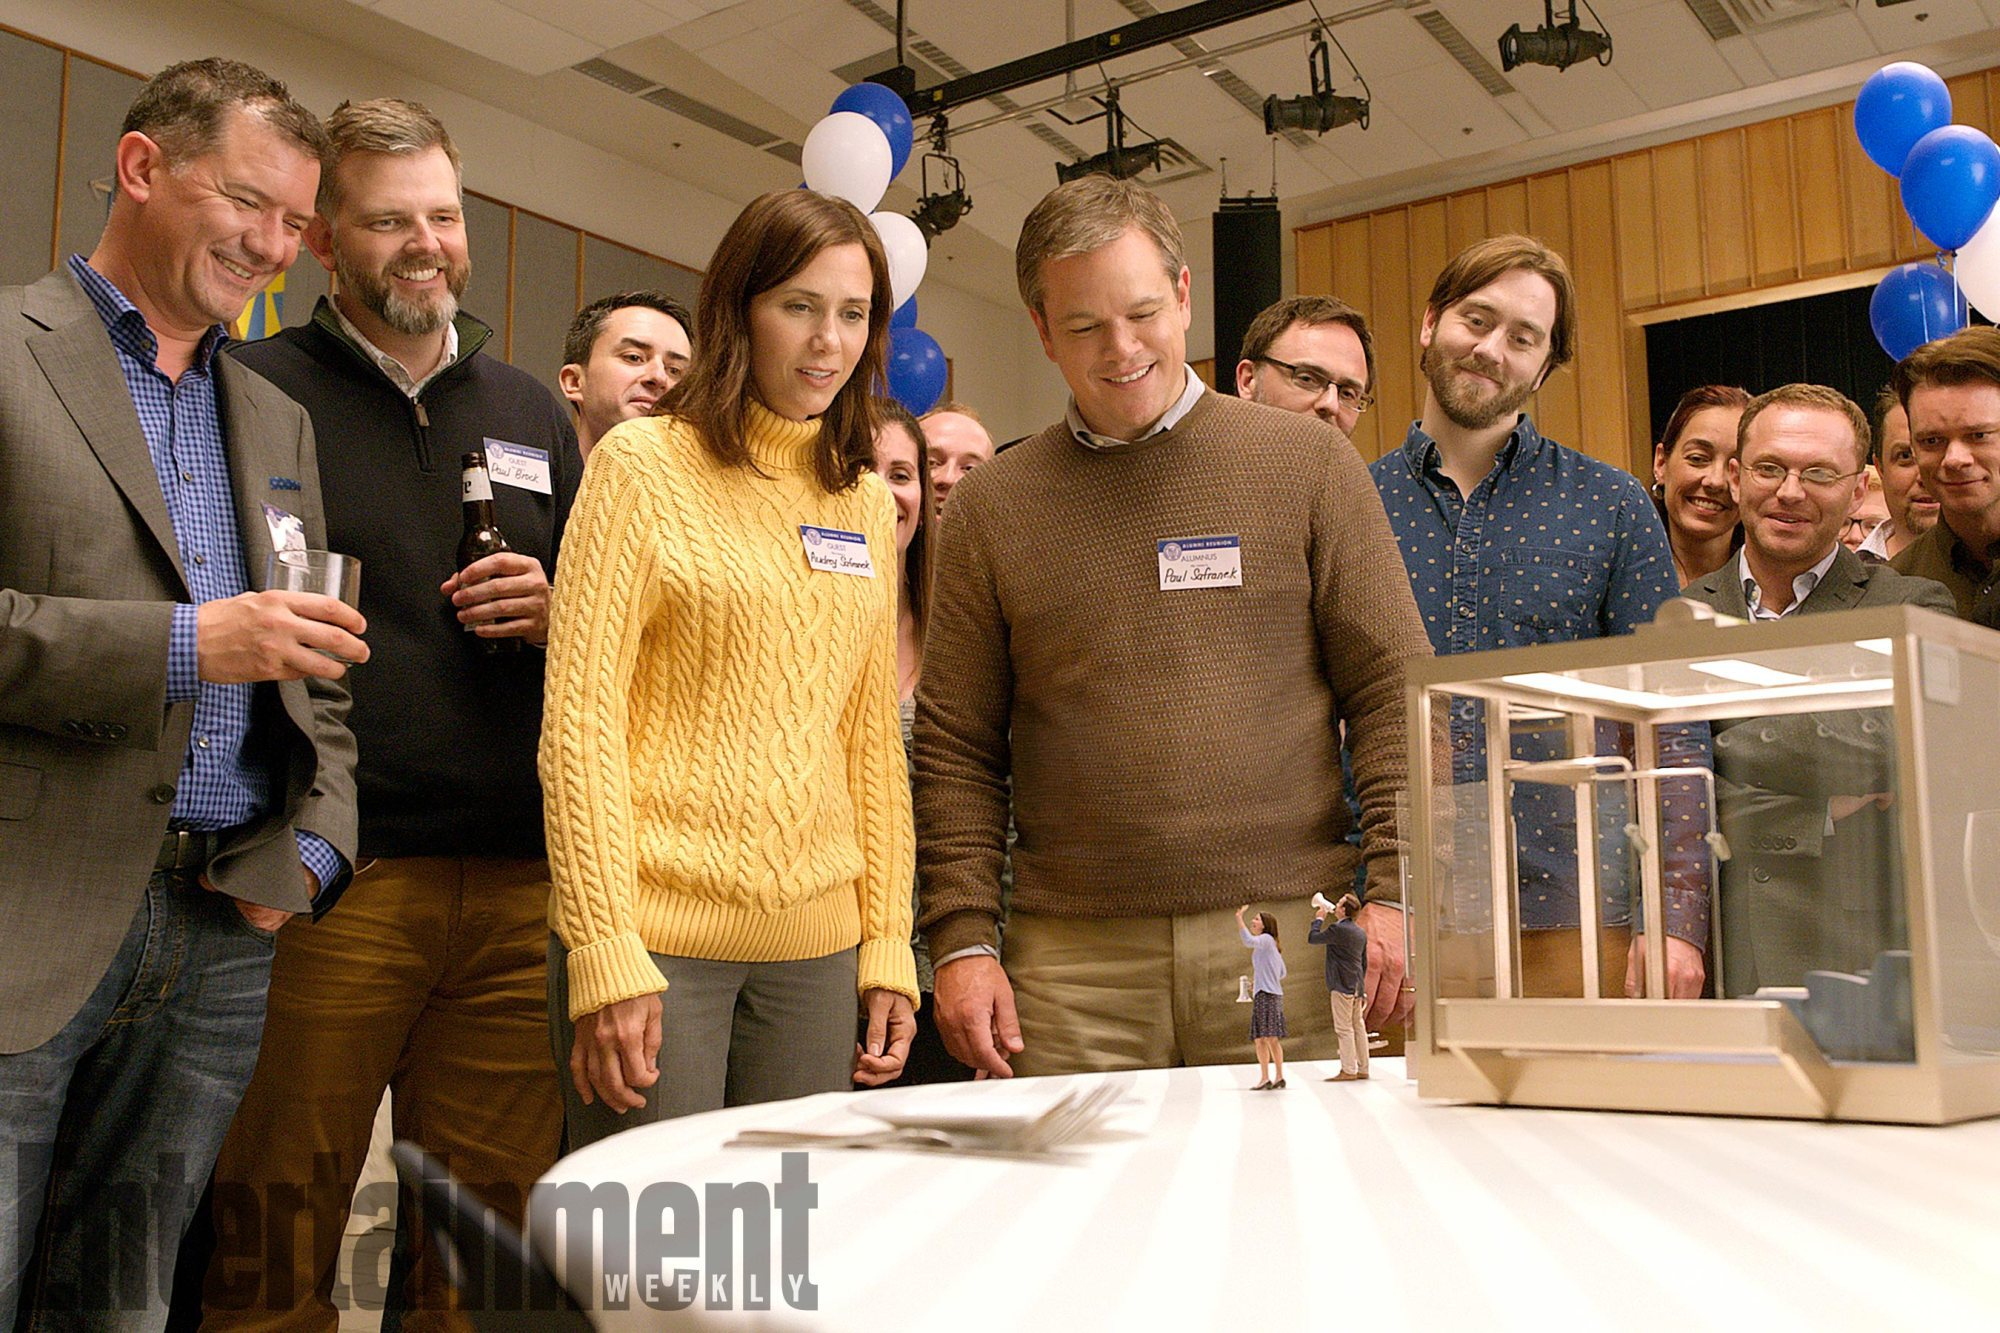 Downsizing review: Matt Damon's quirky adventure loses its way quickly